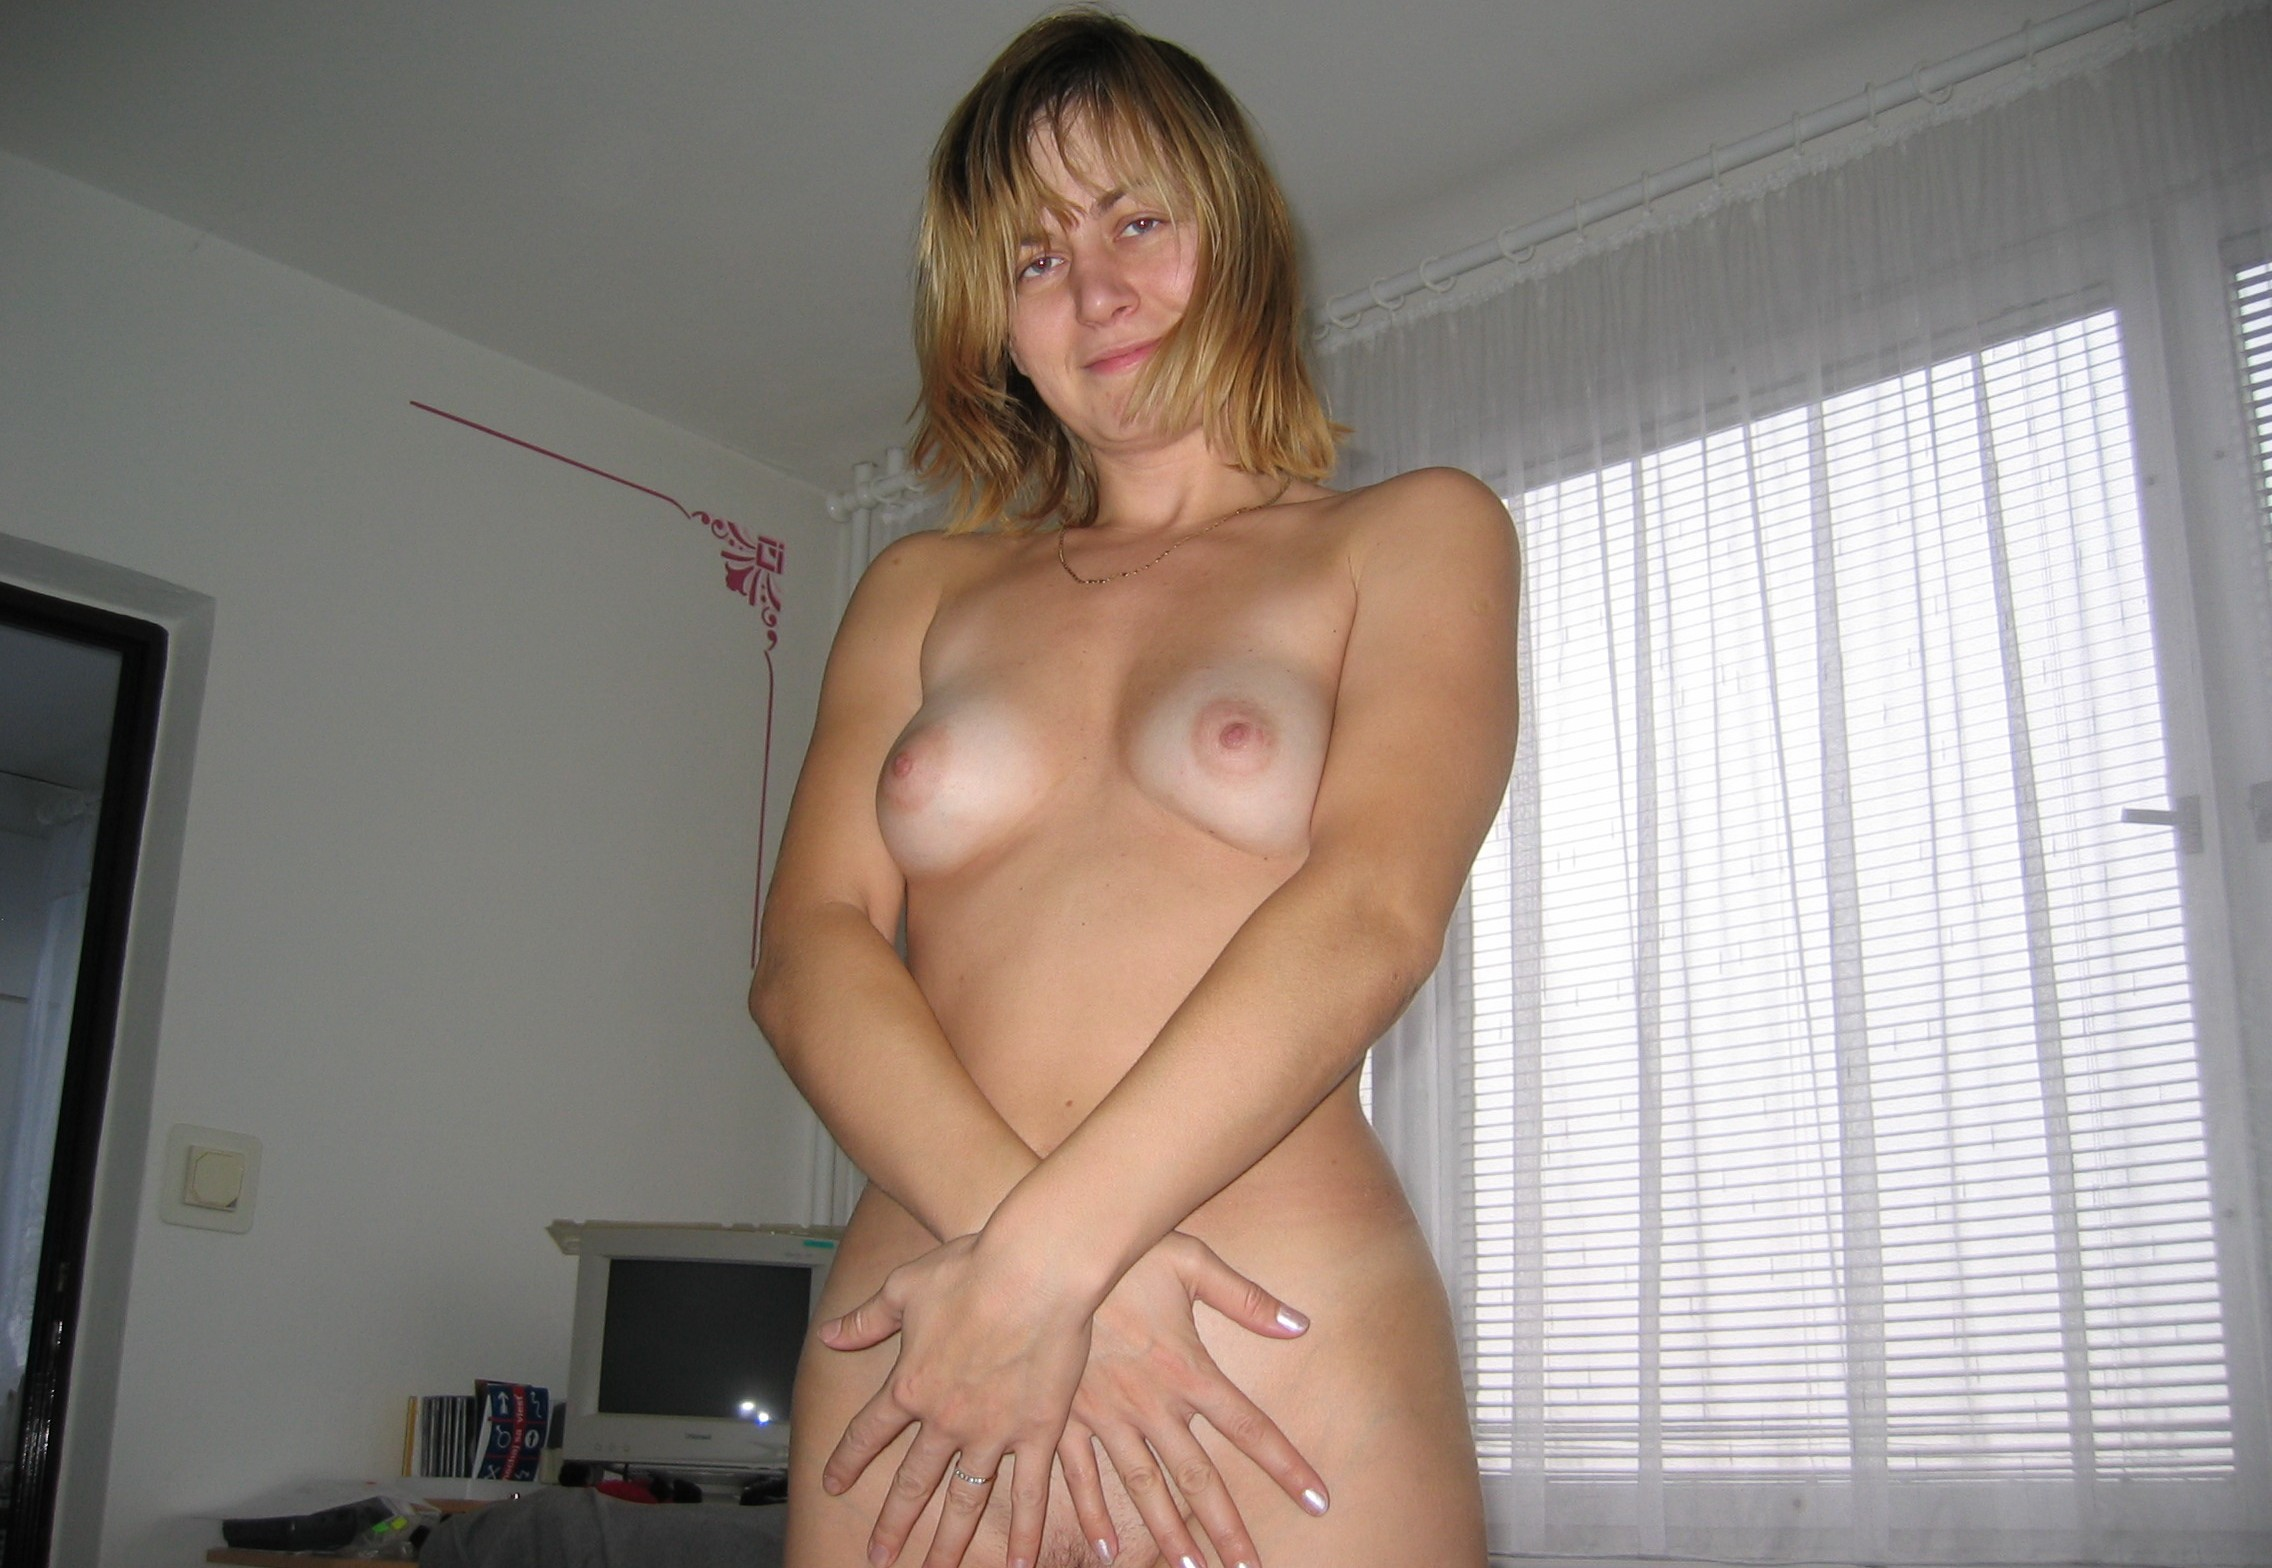 real x rated amateur nudes